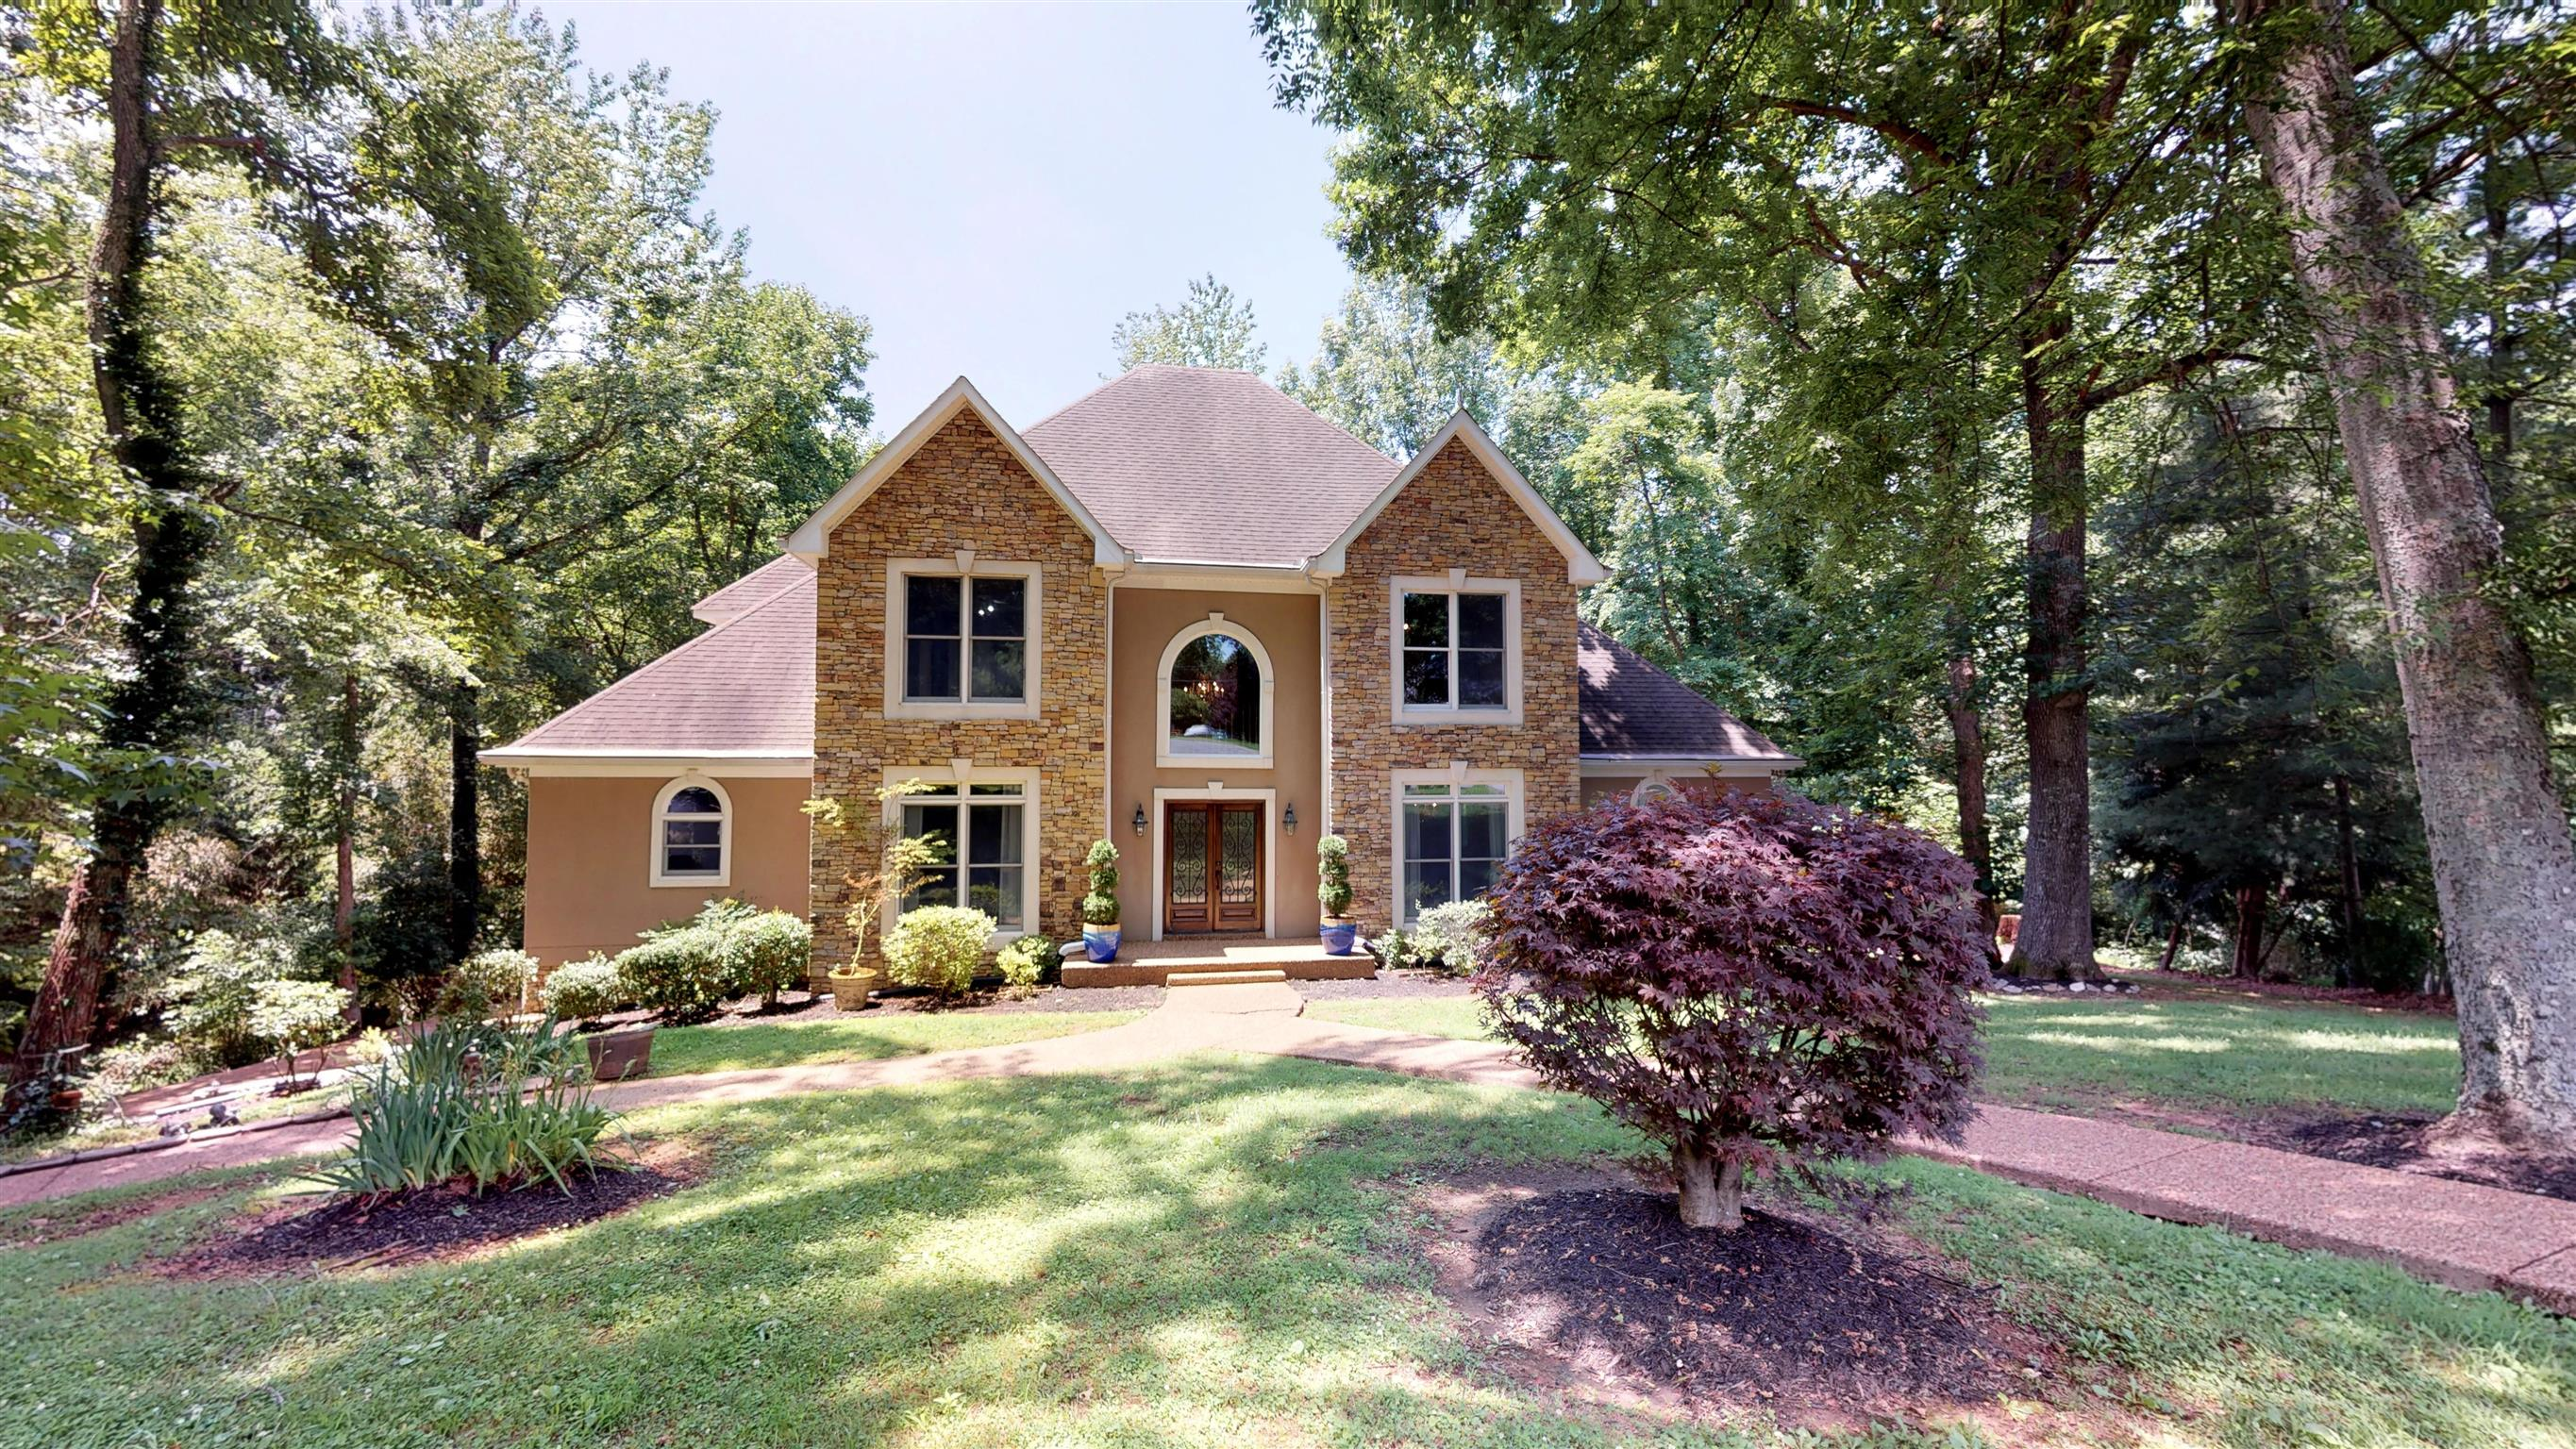 $850,000 - 4Br/5Ba -  for Sale in Hickory Isles 1, Mount Juliet